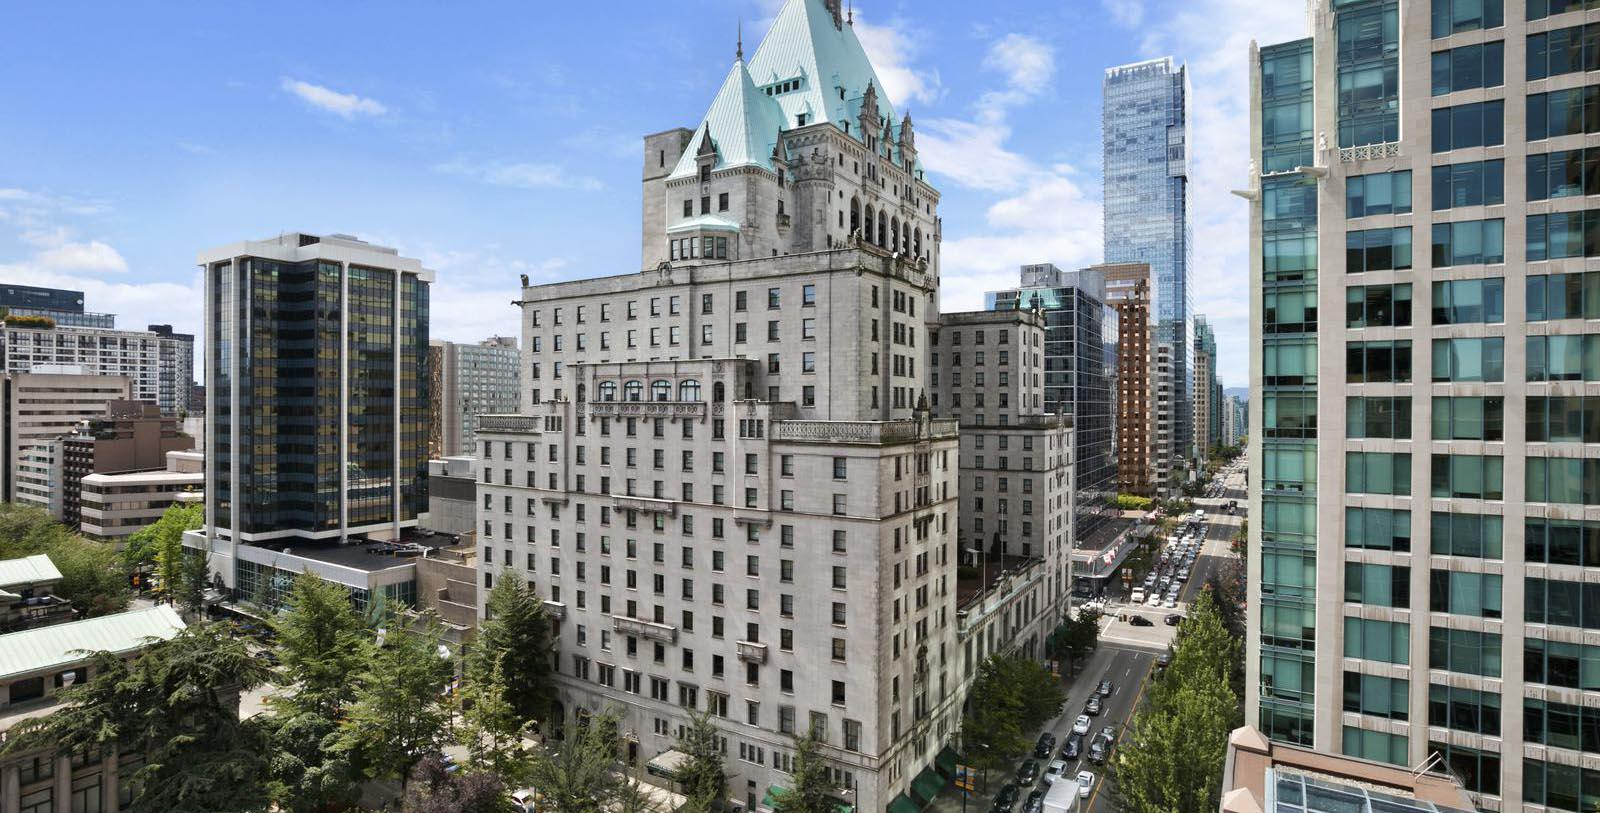 Image of hotel exterior Fairmont Hotel Vancouver, 1939, Member of Historic Hotels Worldwide, in Vancouver, Canada, Special Offers, Discounted Rates, Families, Romantic Escape, Honeymoons, Anniversaries, Reunions